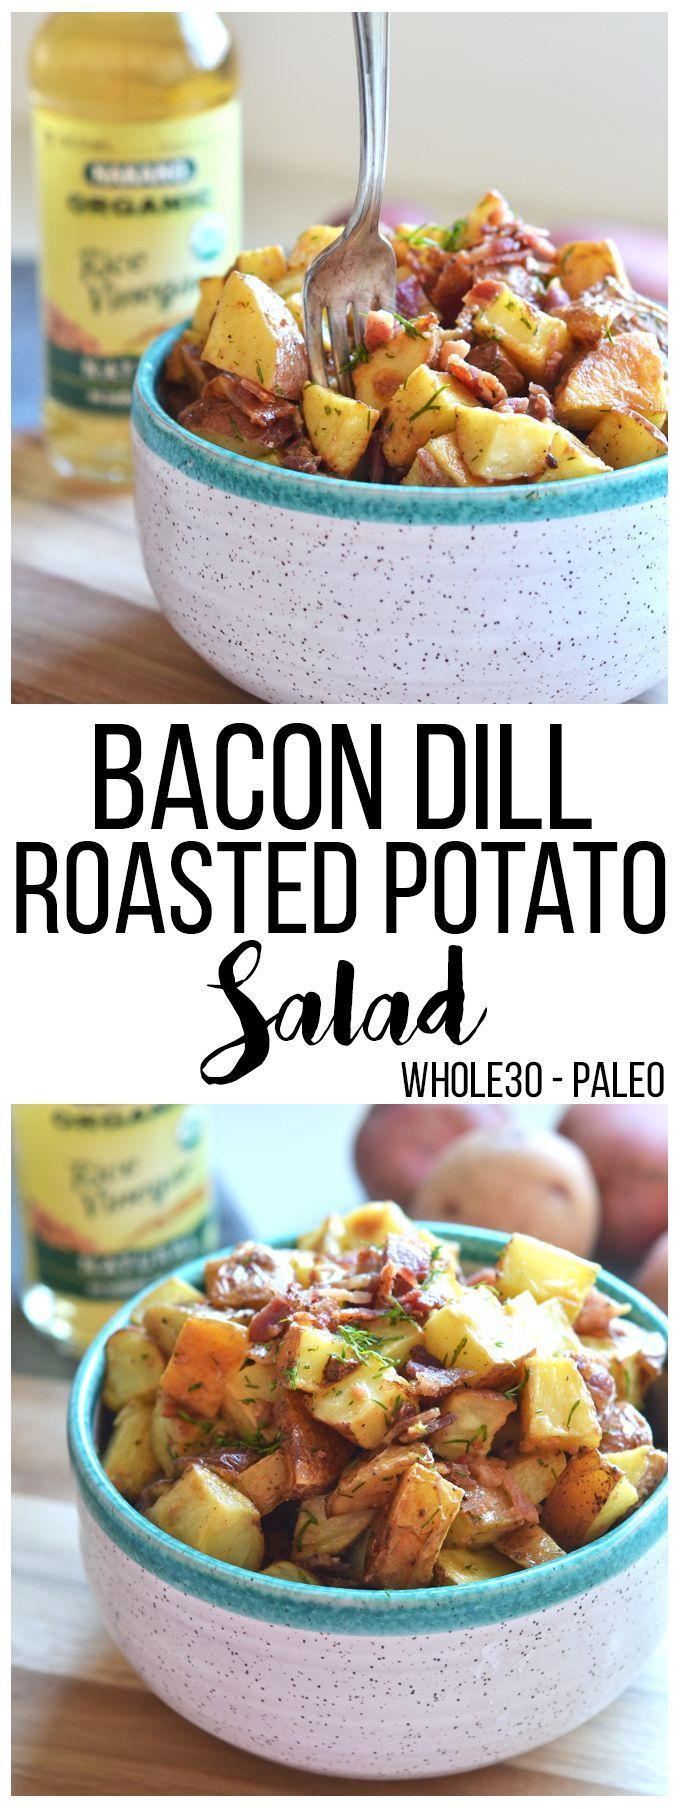 This Bacon Dill Roasted Potato Salad is the perfect paleo and Whole30 side dish for a summer party!